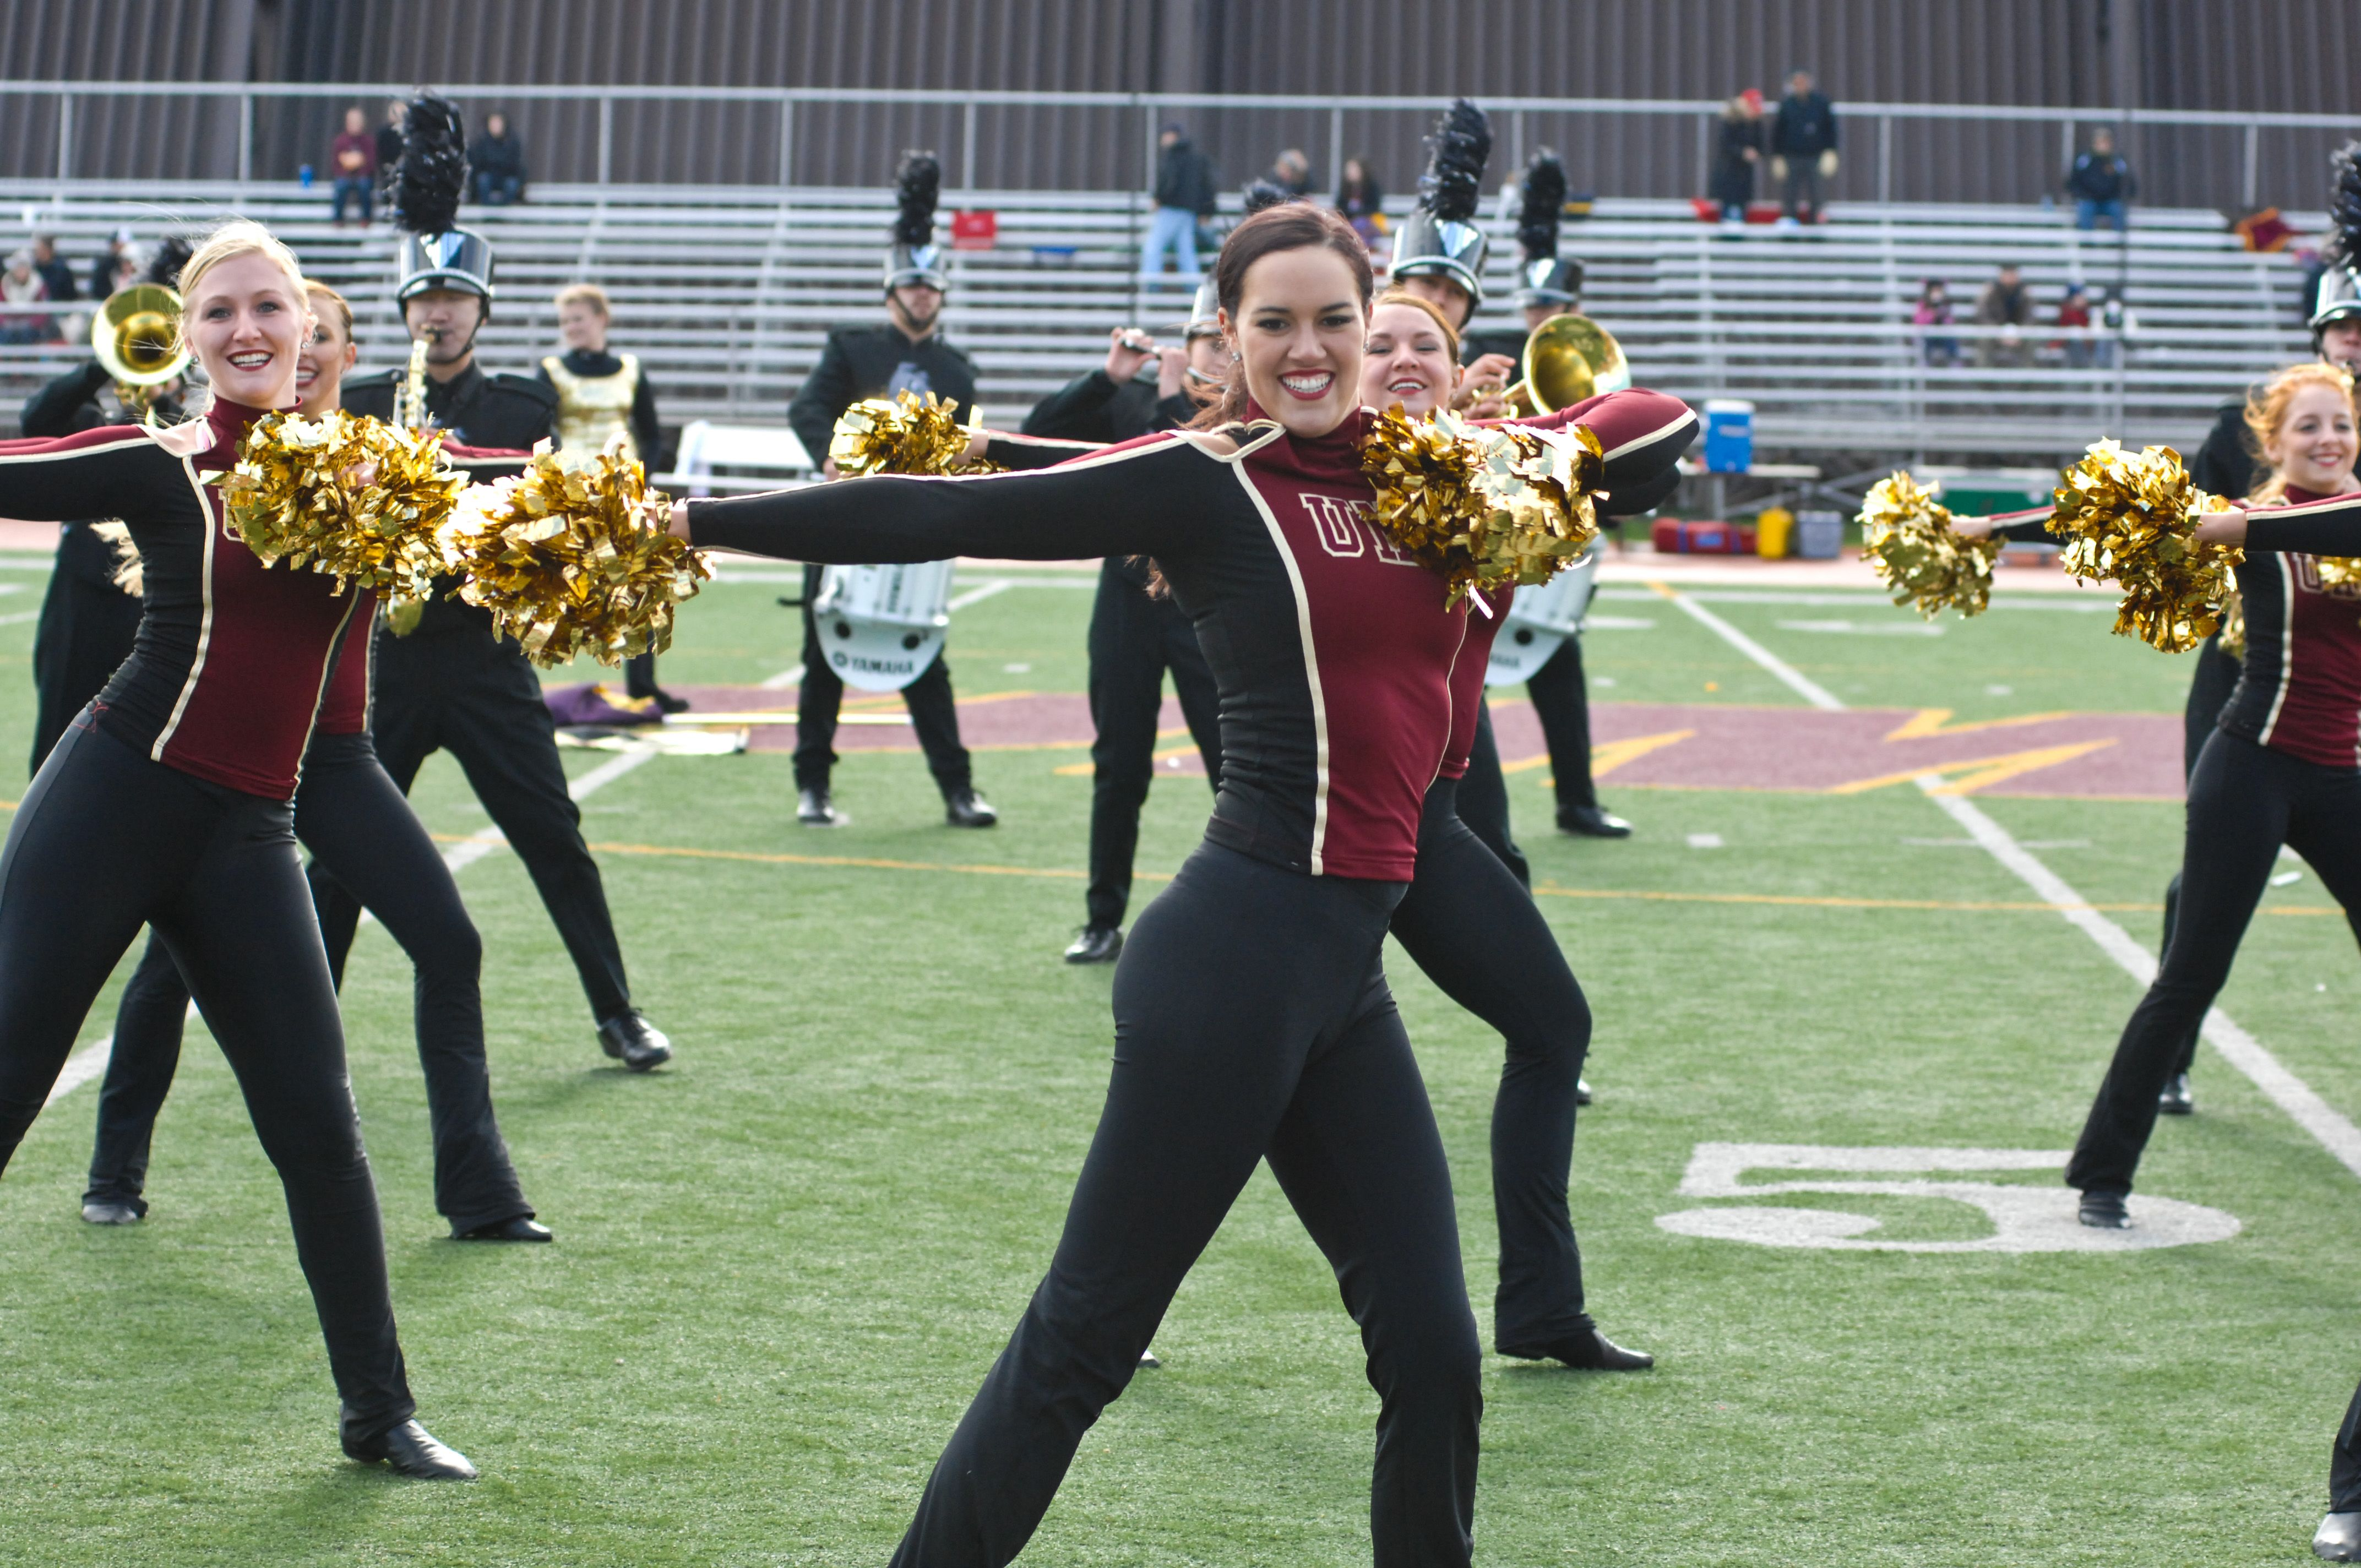 Dance Team Performing their special routine with the UMD Marching Band - Fall 2013